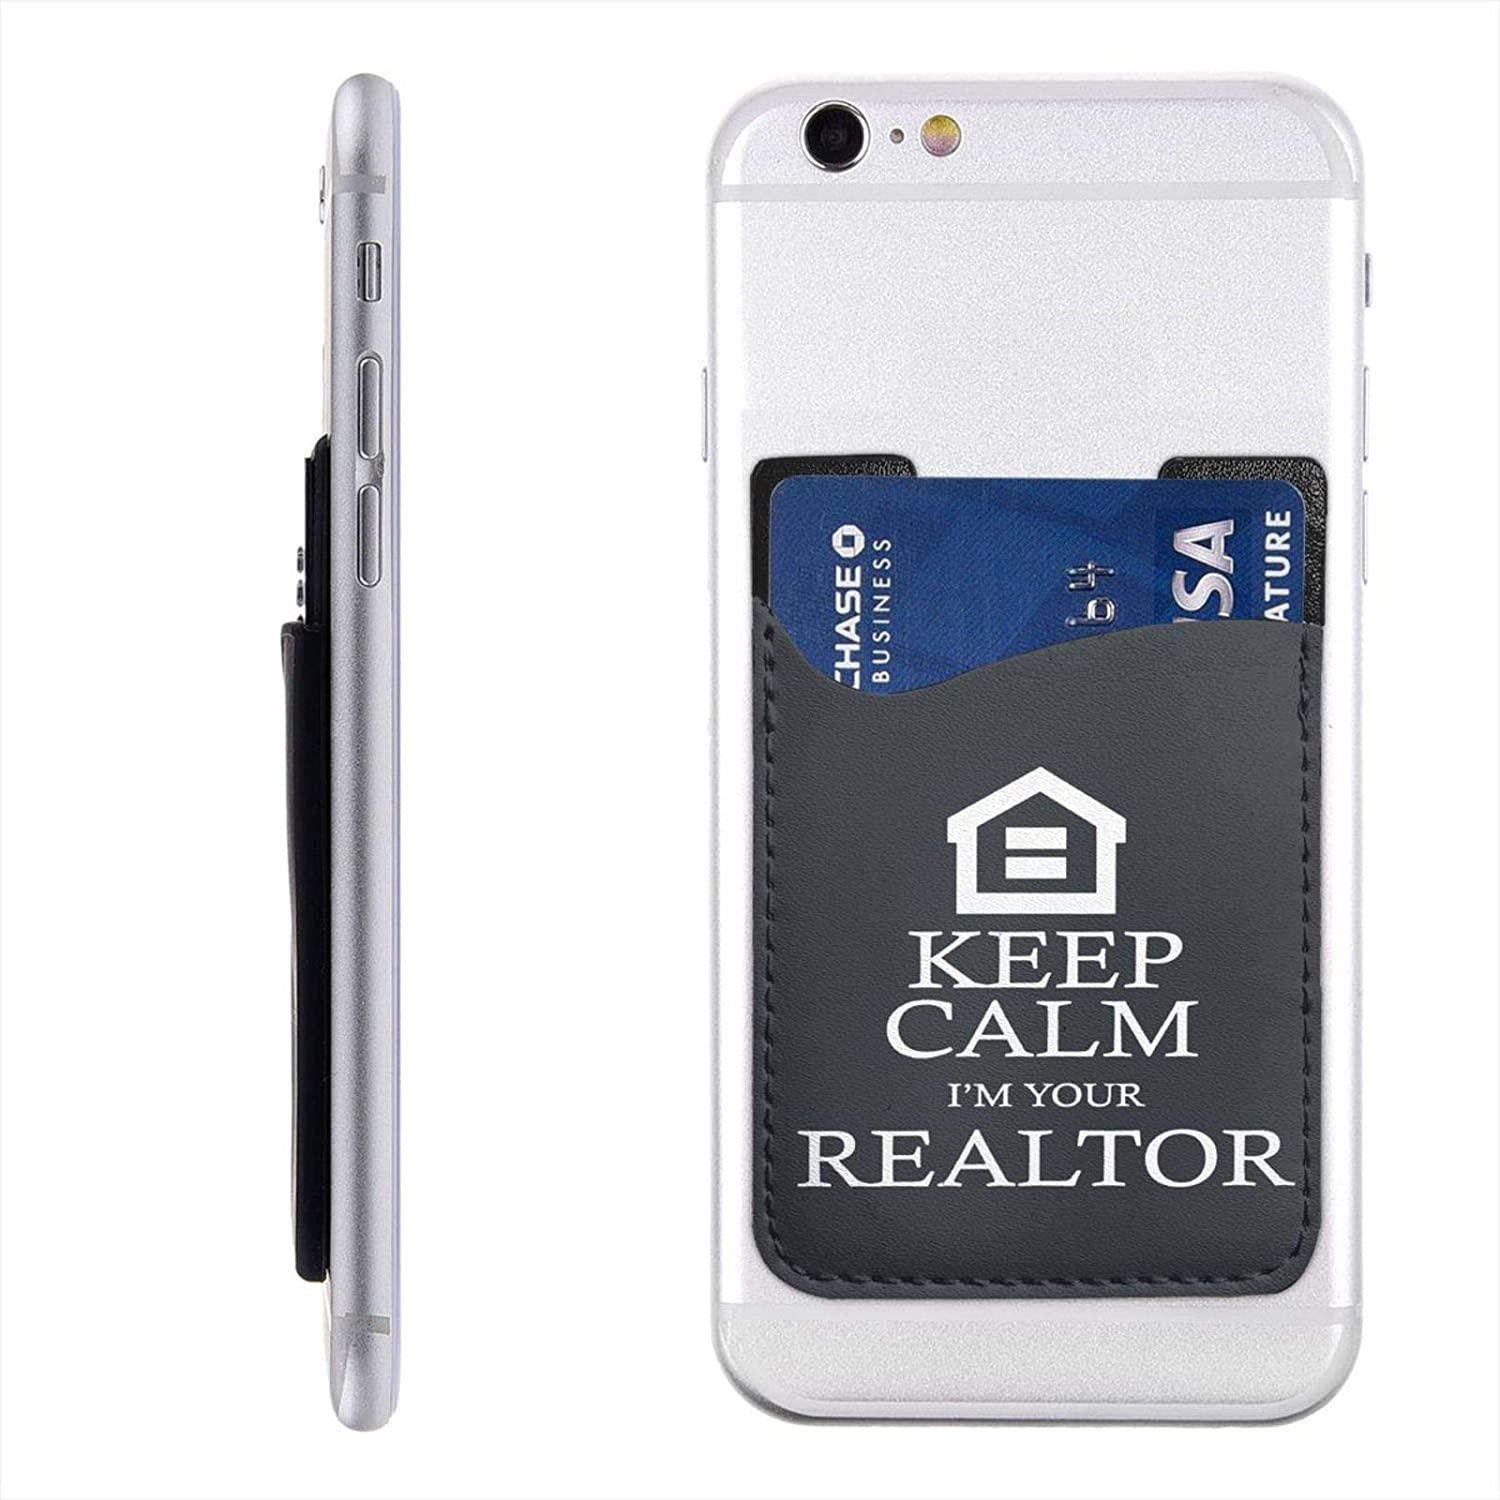 I'm Your Realtor Leather Phone Card Holder Stick On Wallet for Back of Phone